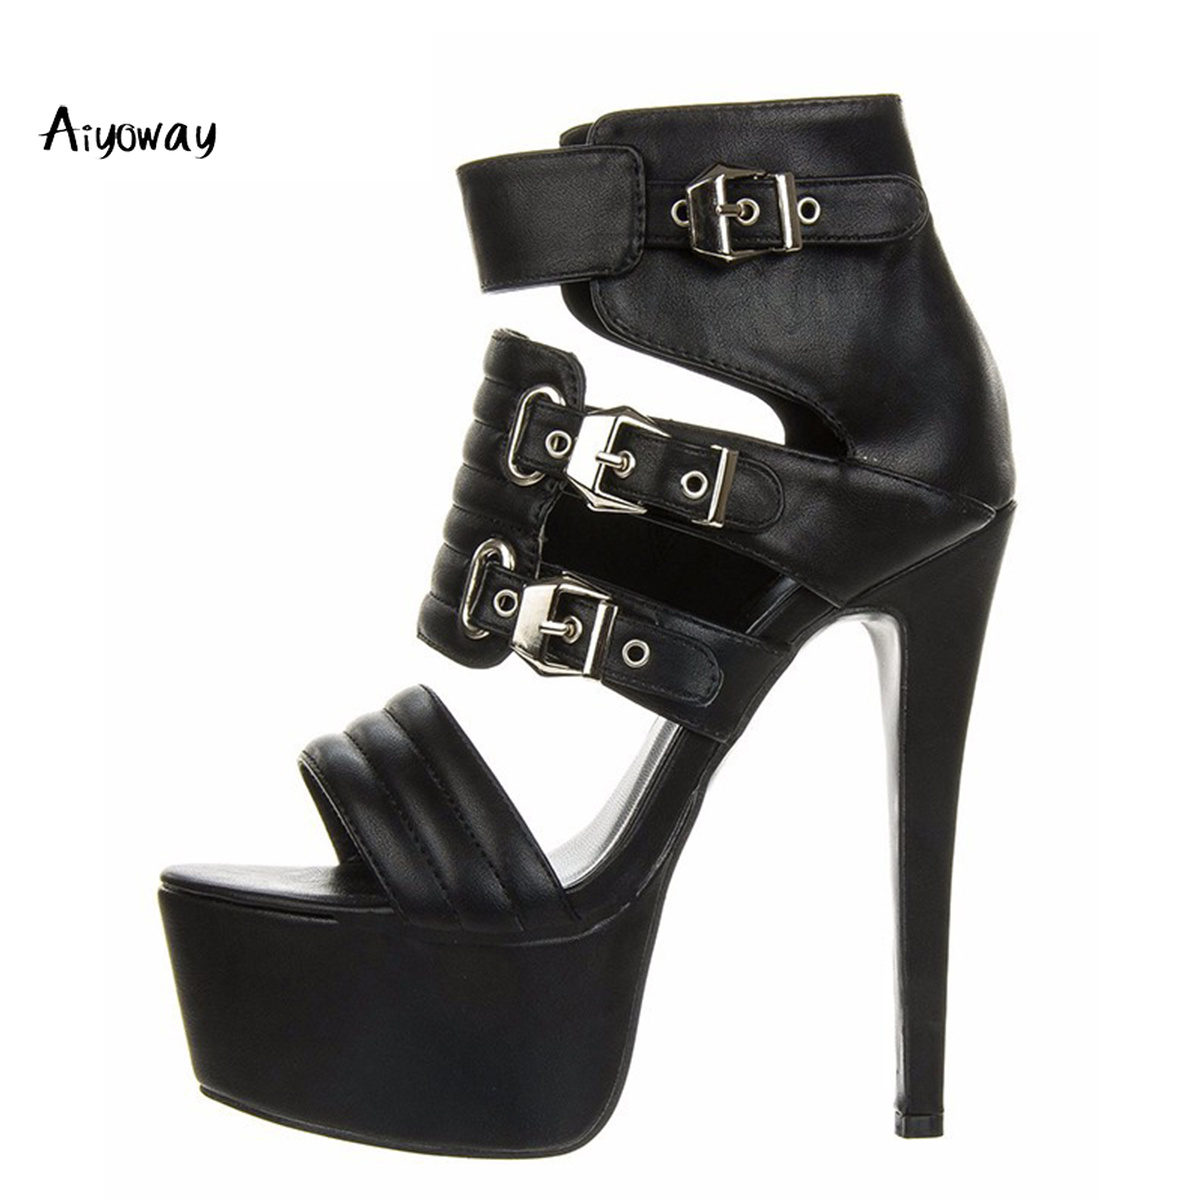 Aiyoway Women Shoes Peep Toe High Heels Sandals Platform Ankle Buckles Spring Summer Evening Party Dress Shoes Sexy Thin Heels in High Heels from Shoes